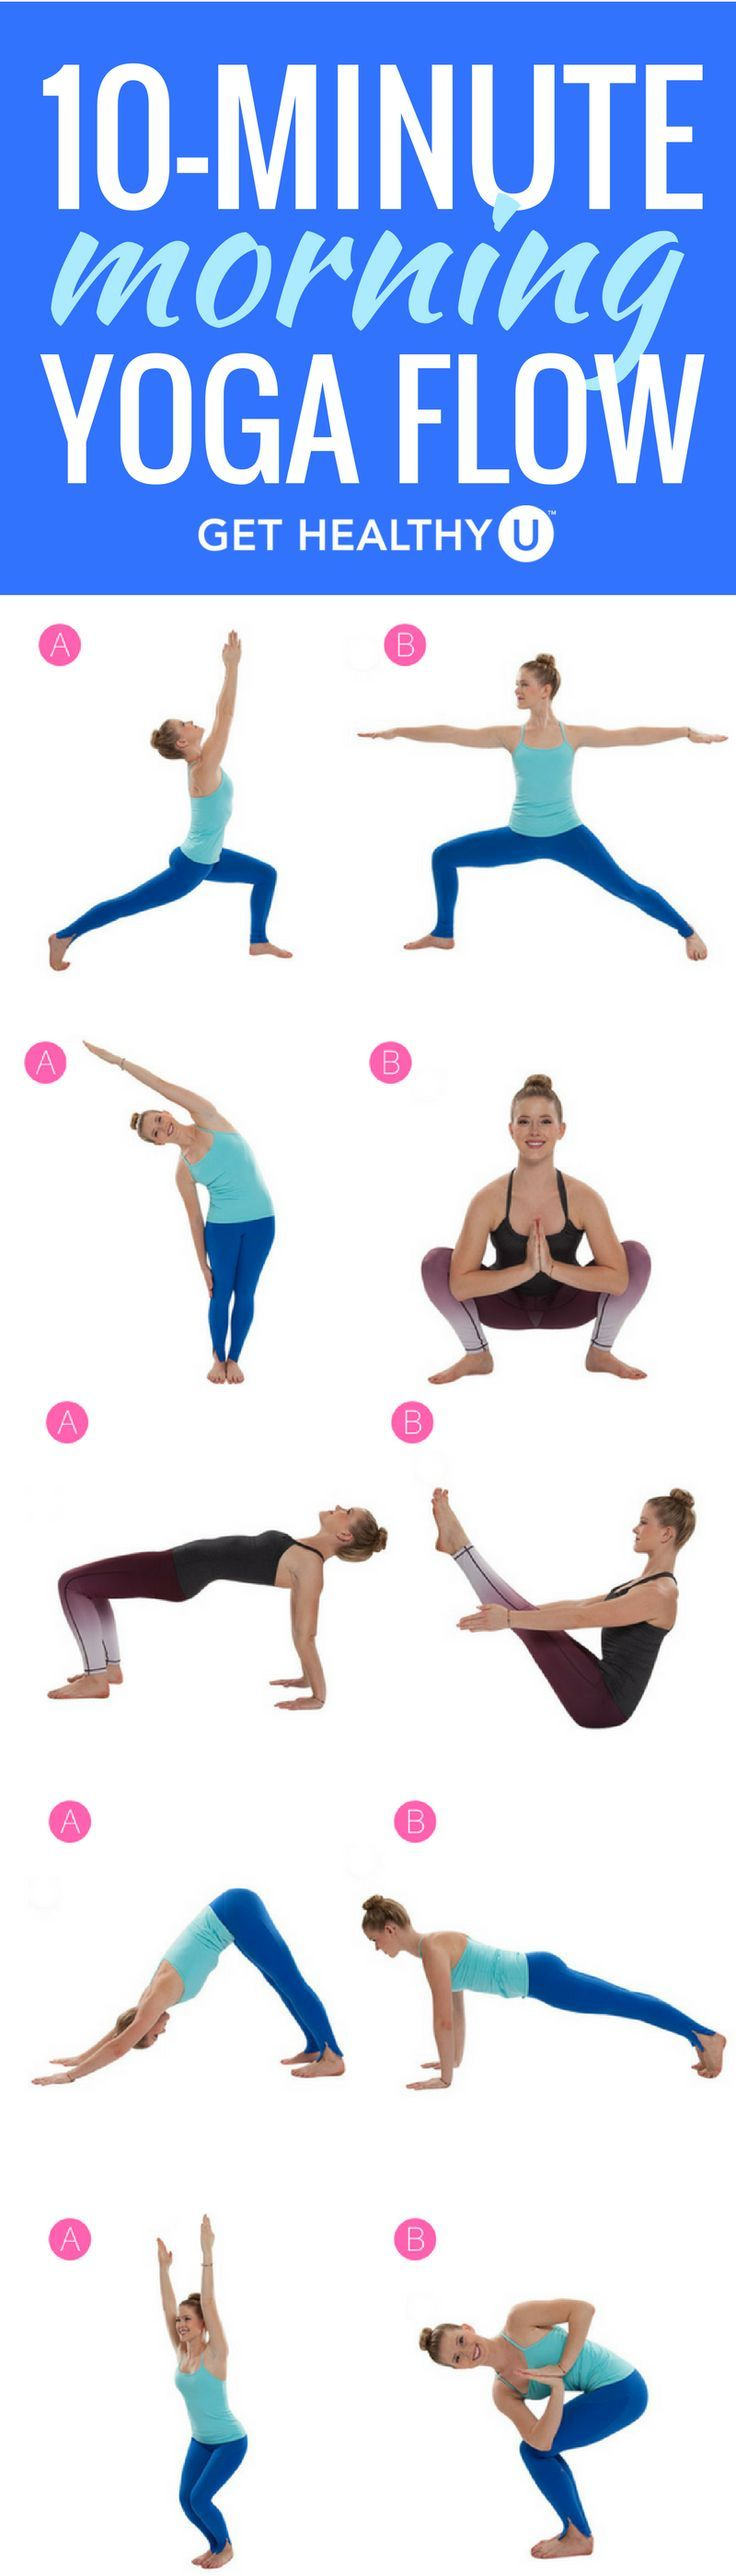 Get Energized With This 10-Minute Morning Yoga Sequence